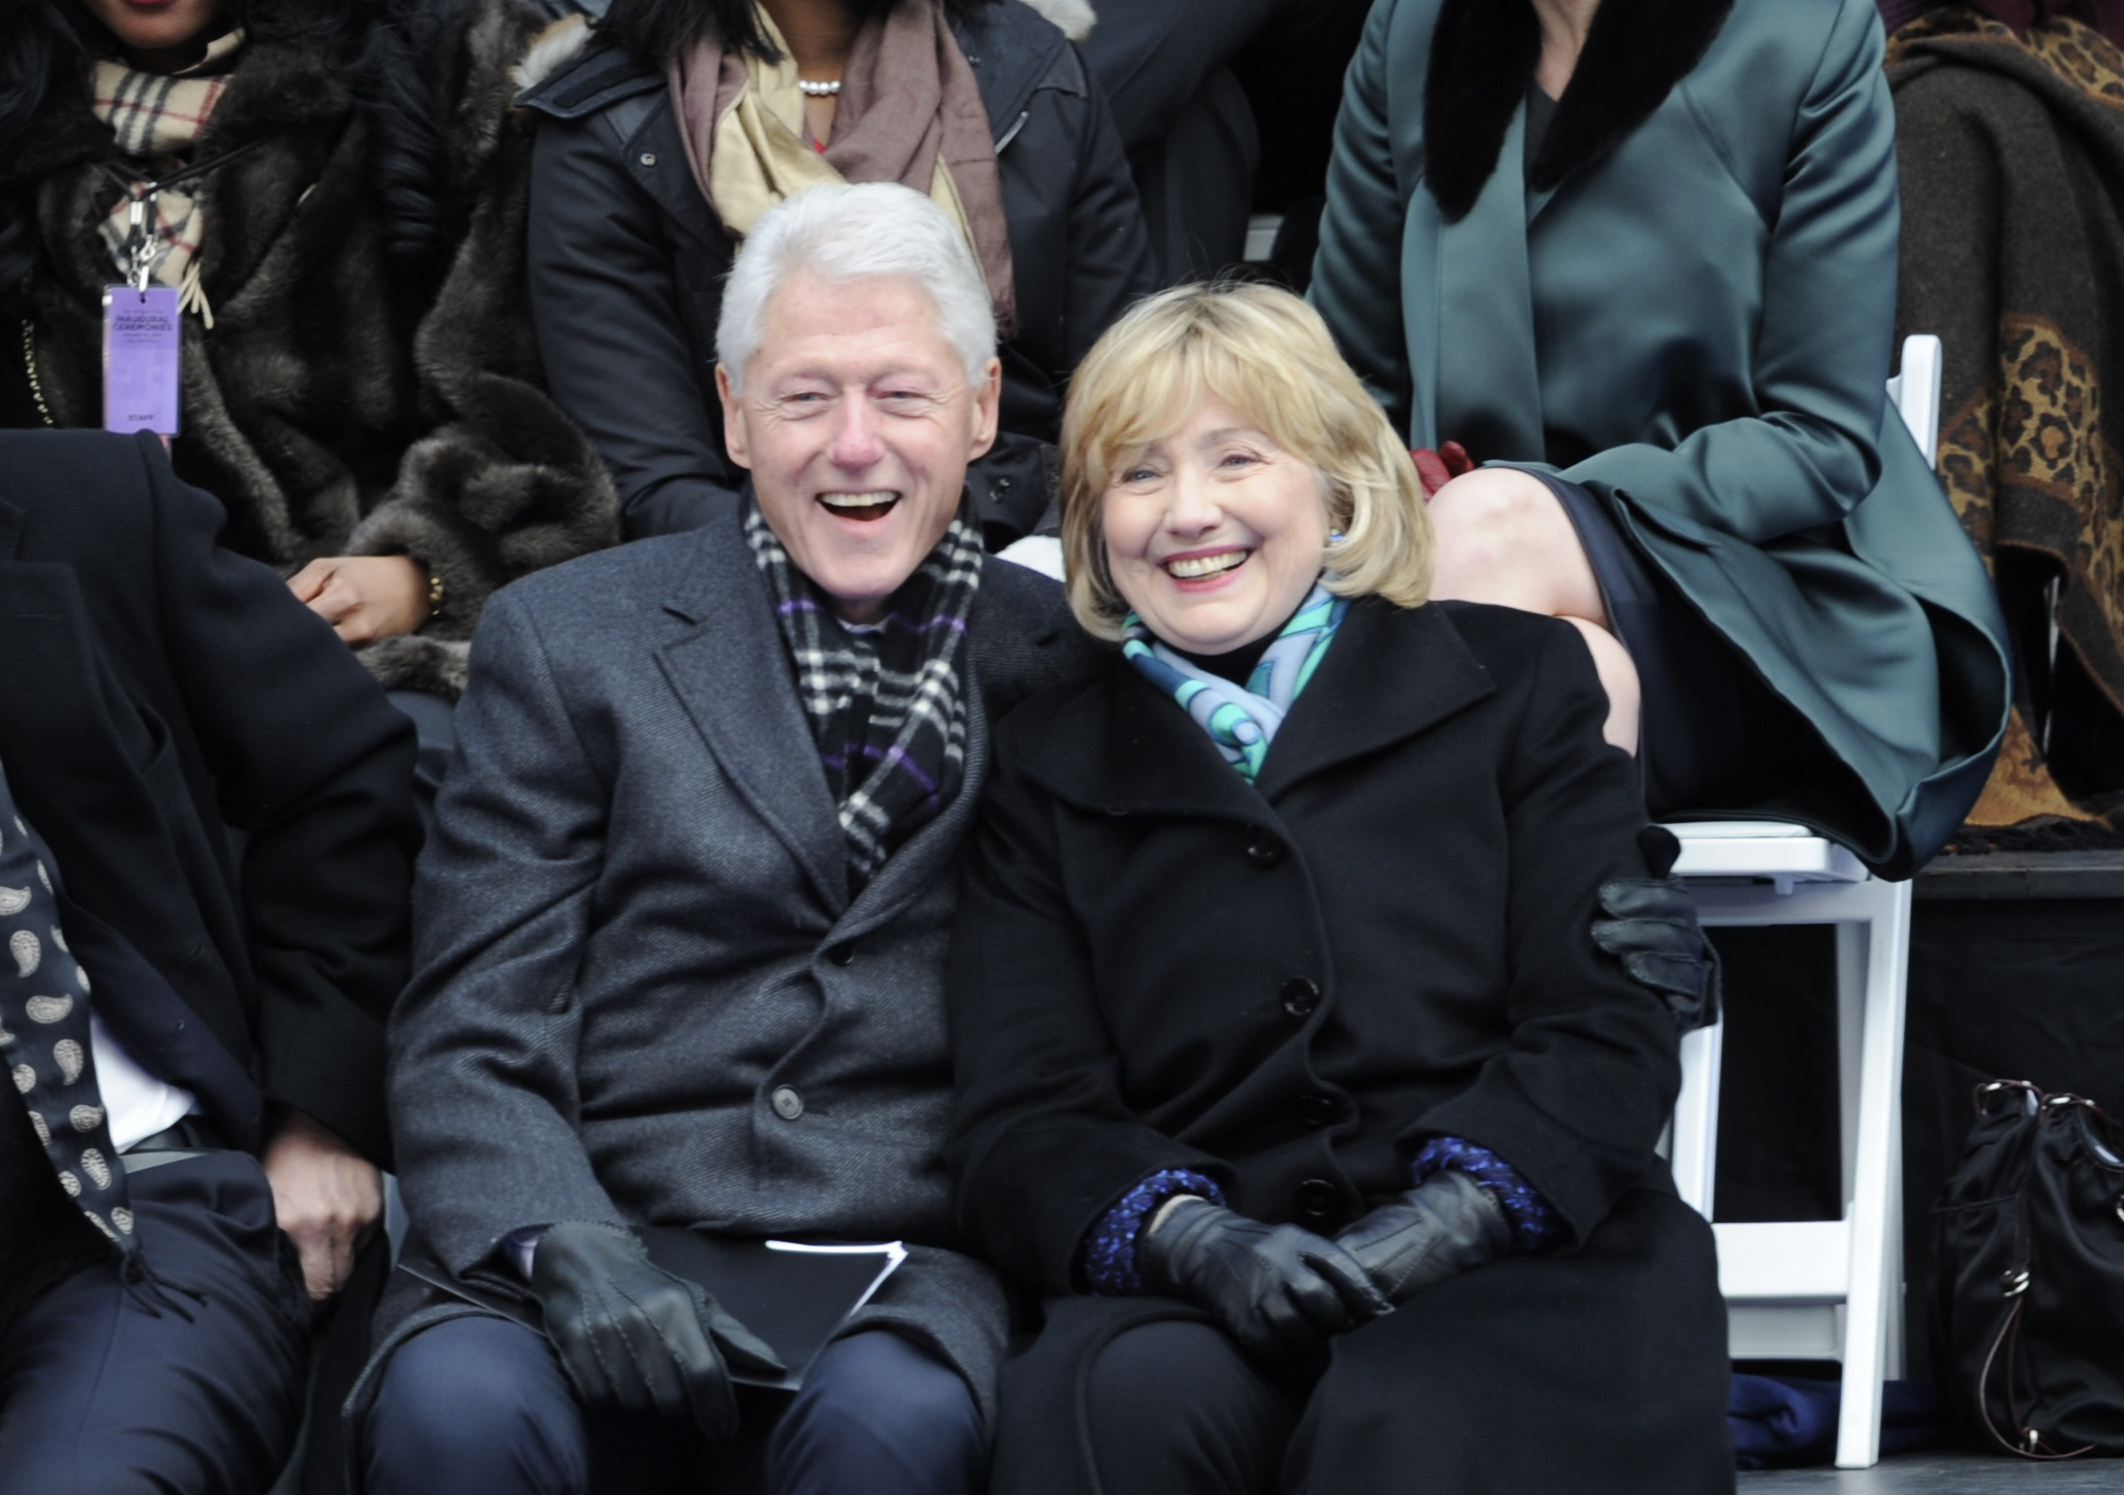 President Bill Clinton and Hillary Clinton attend the Inauguration of New York City Mayor Bill de Blasio on Jan. 1.